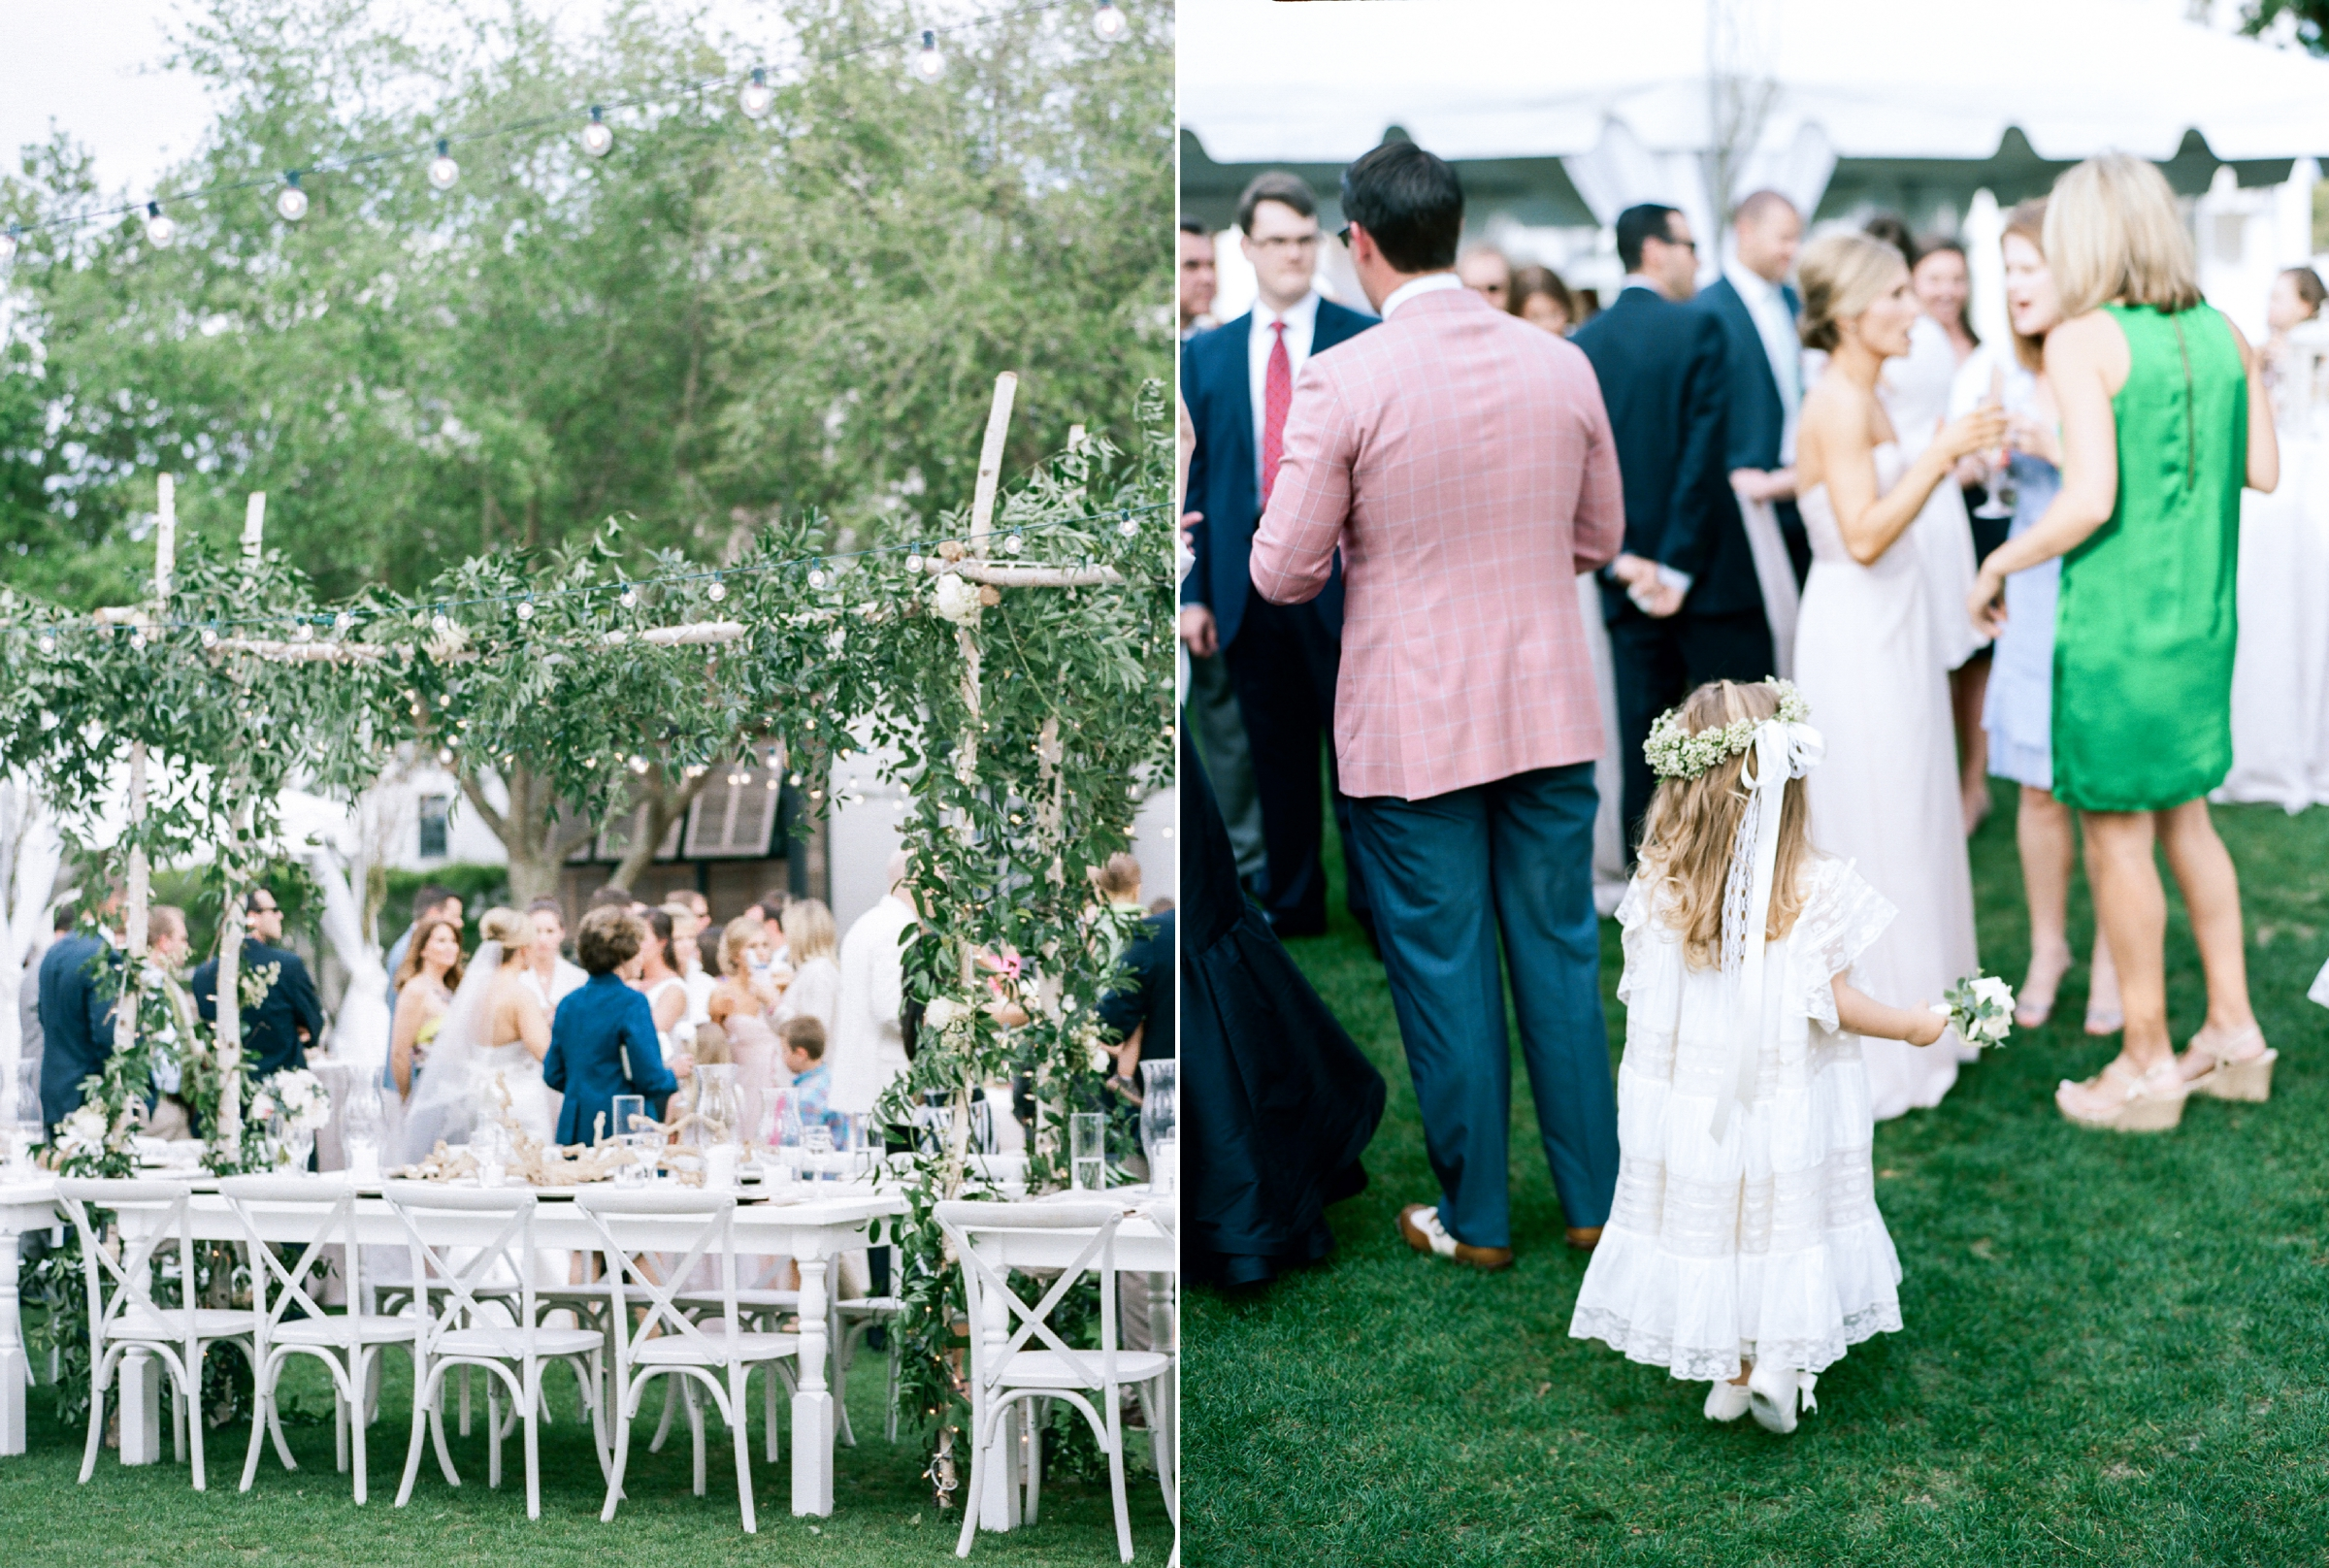 rosemary_beach_wedding_photographer_shannon_griffin_0006.jpg